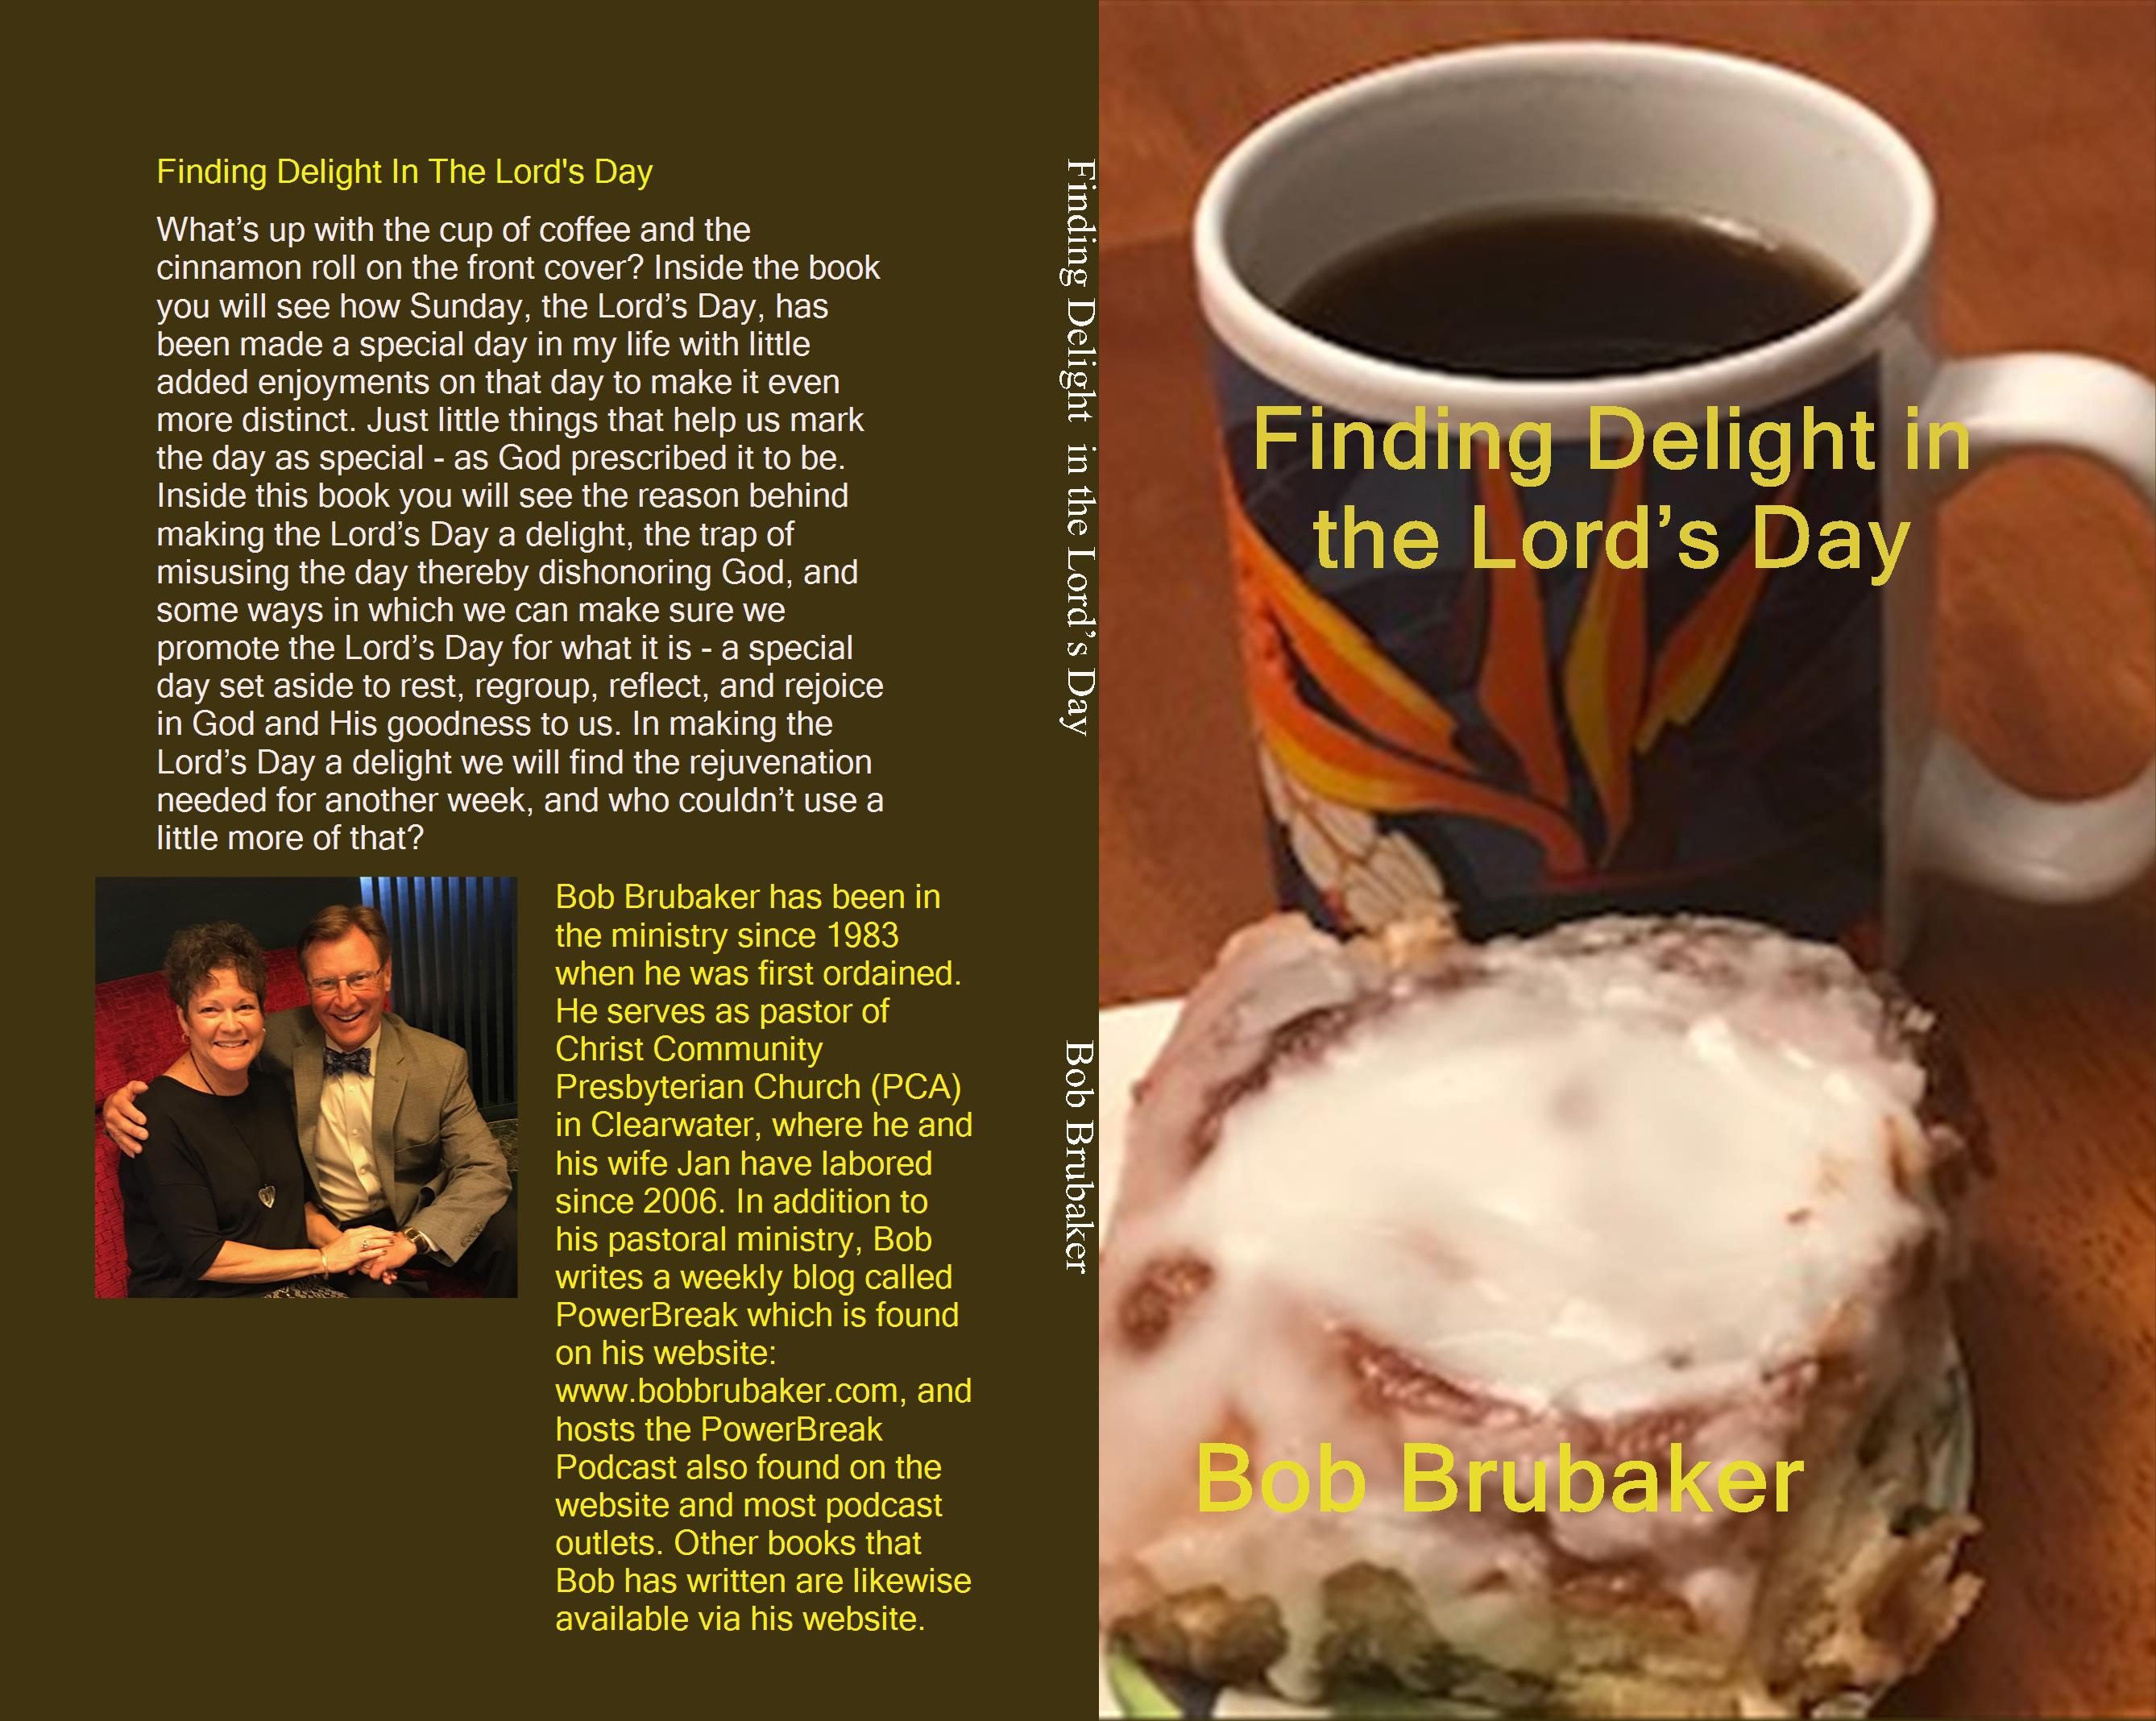 Finding Delight  in the Lord's Day cover image